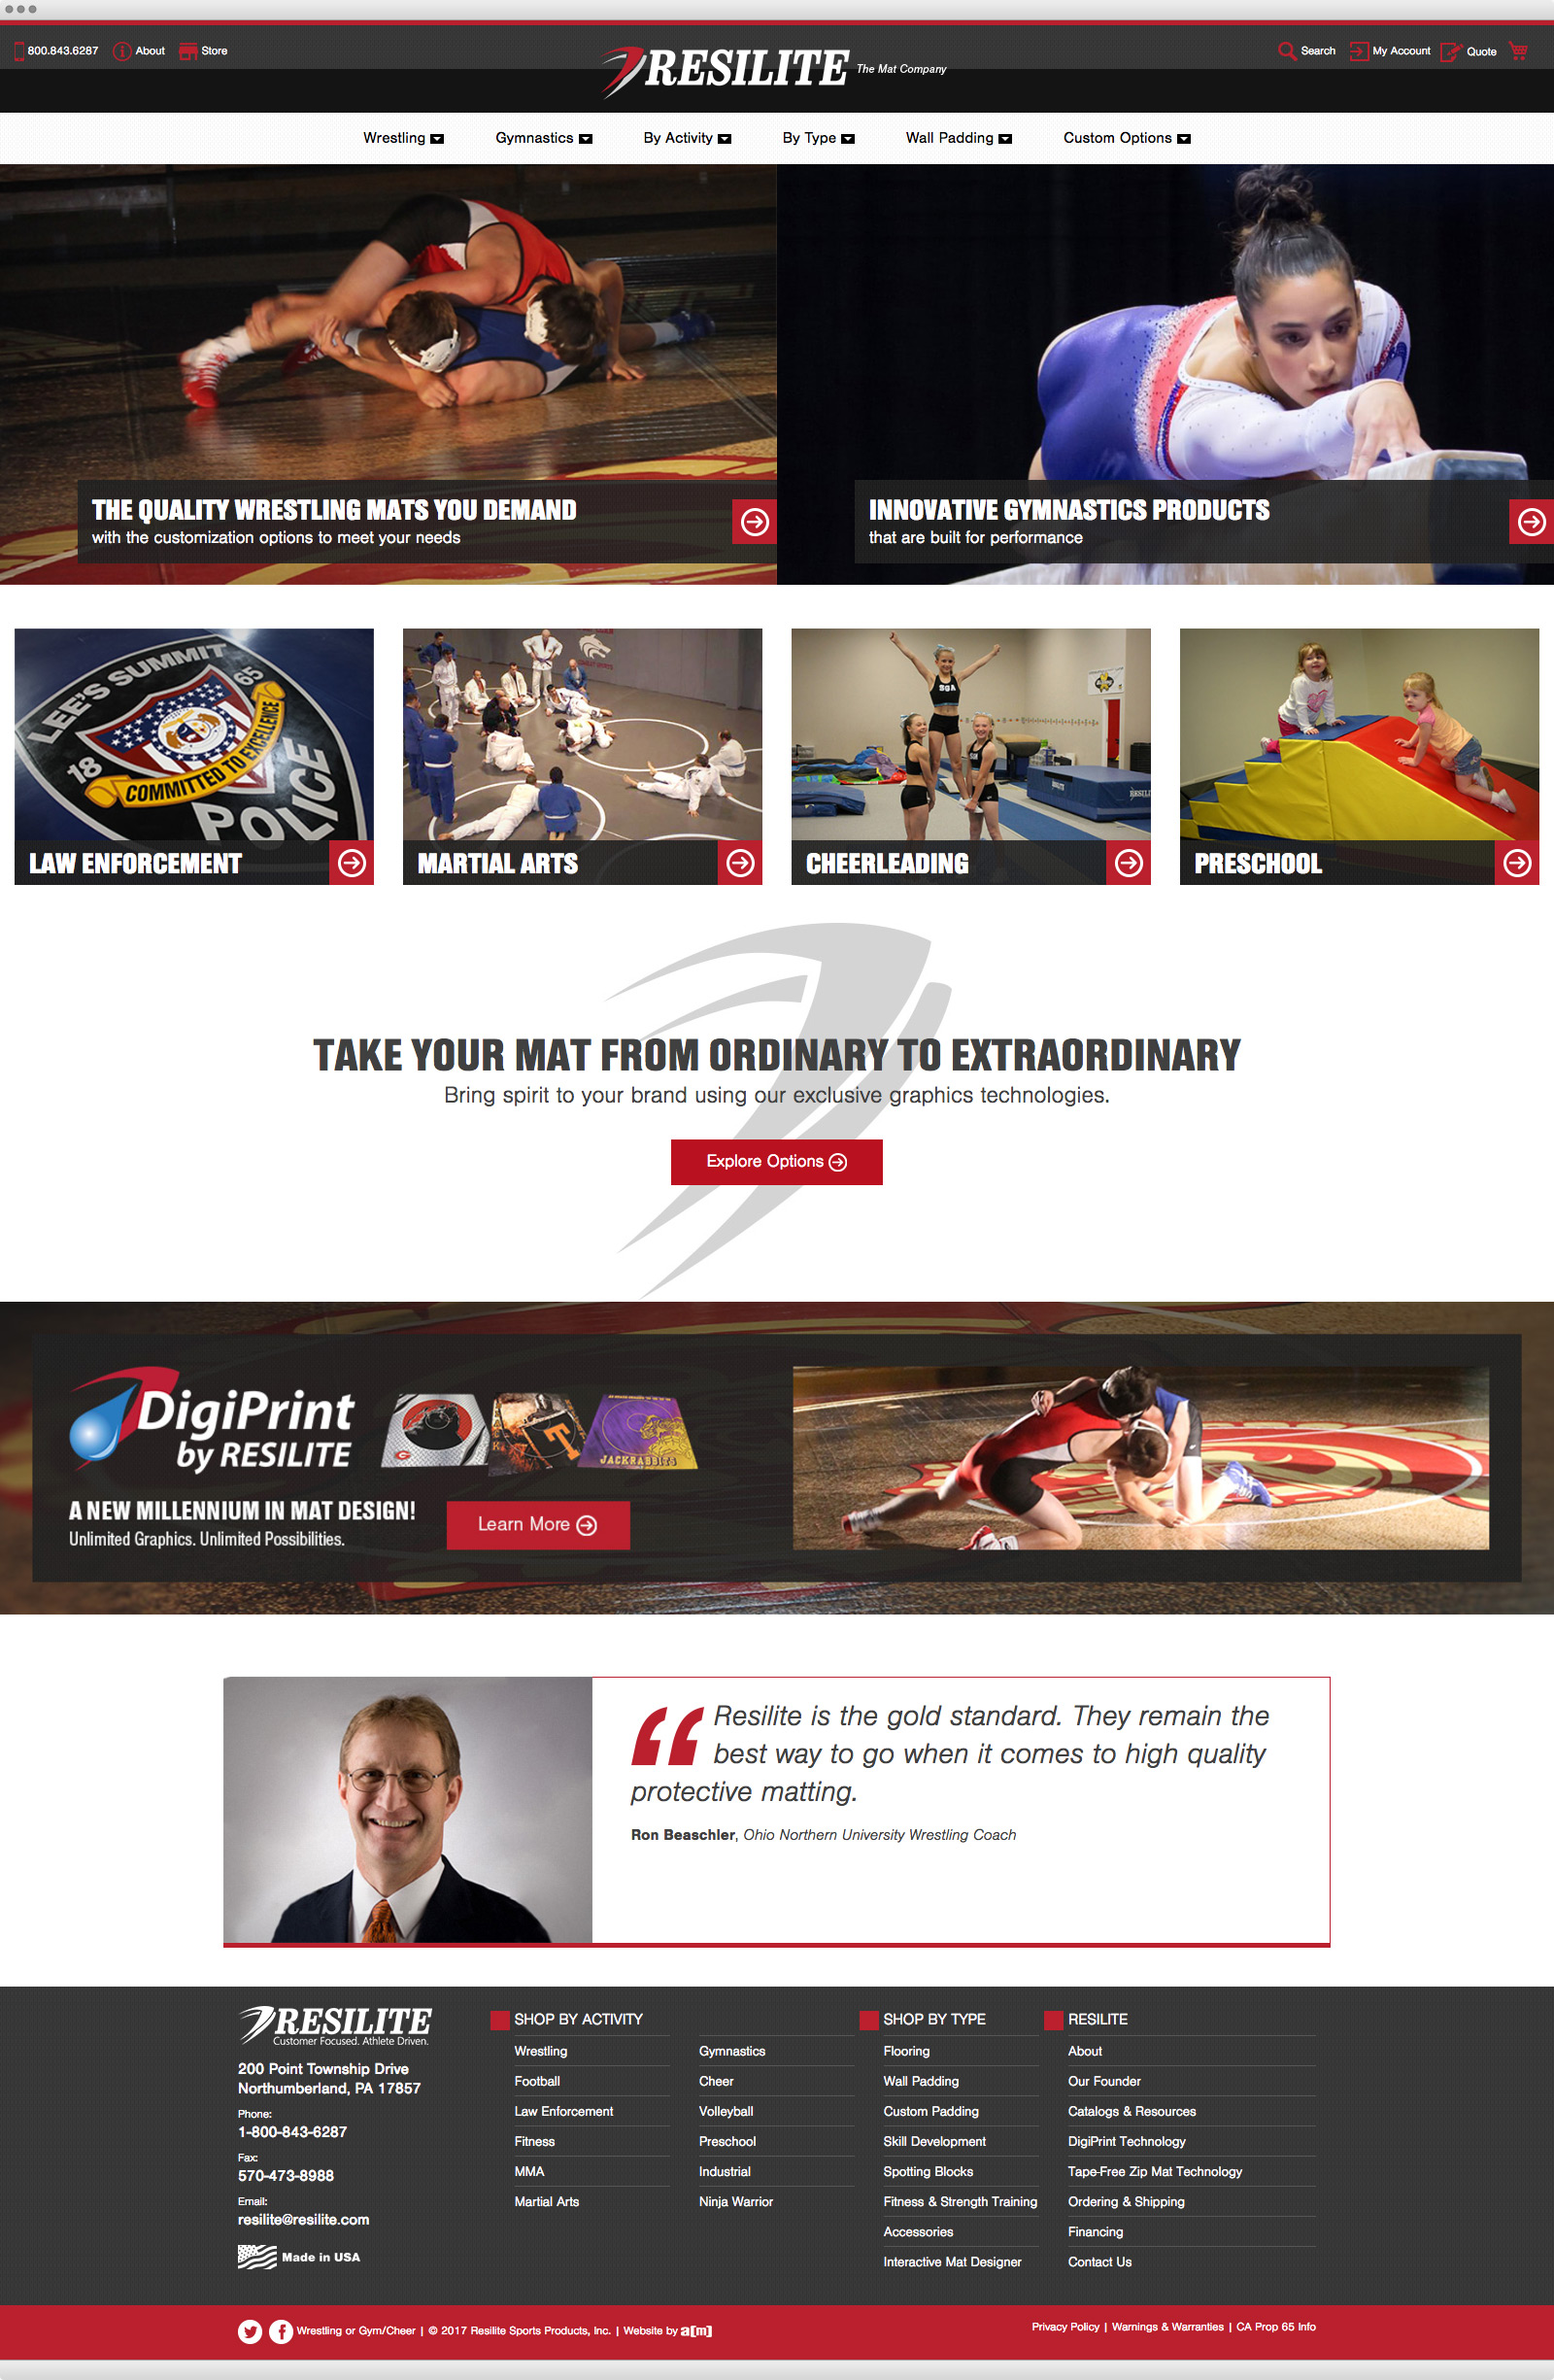 Resilite Sports Products website design